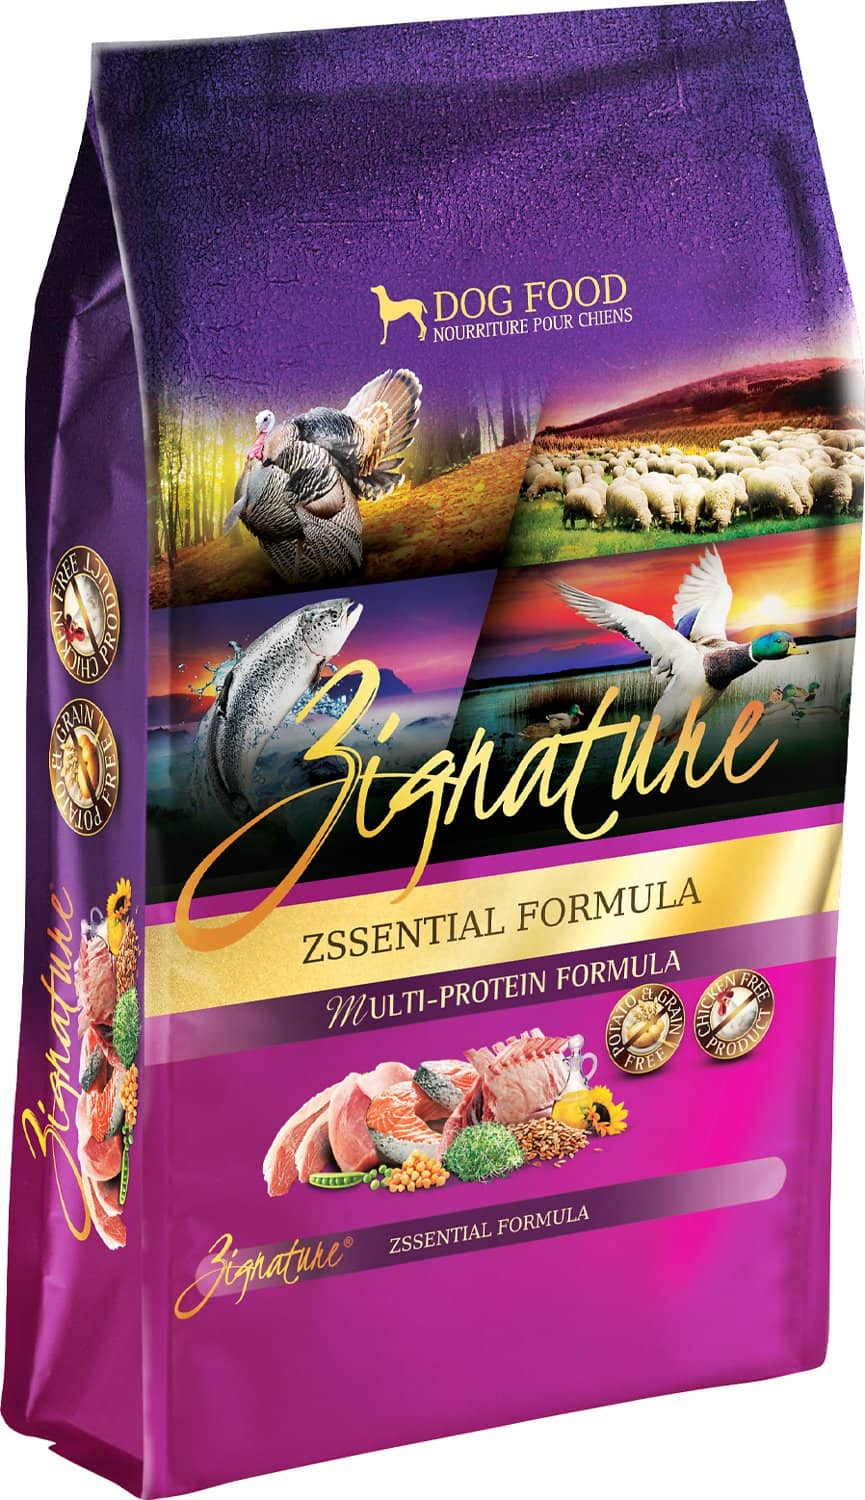 Zignature Dog Food Review 2021: Best Limited Ingredient Food? 10